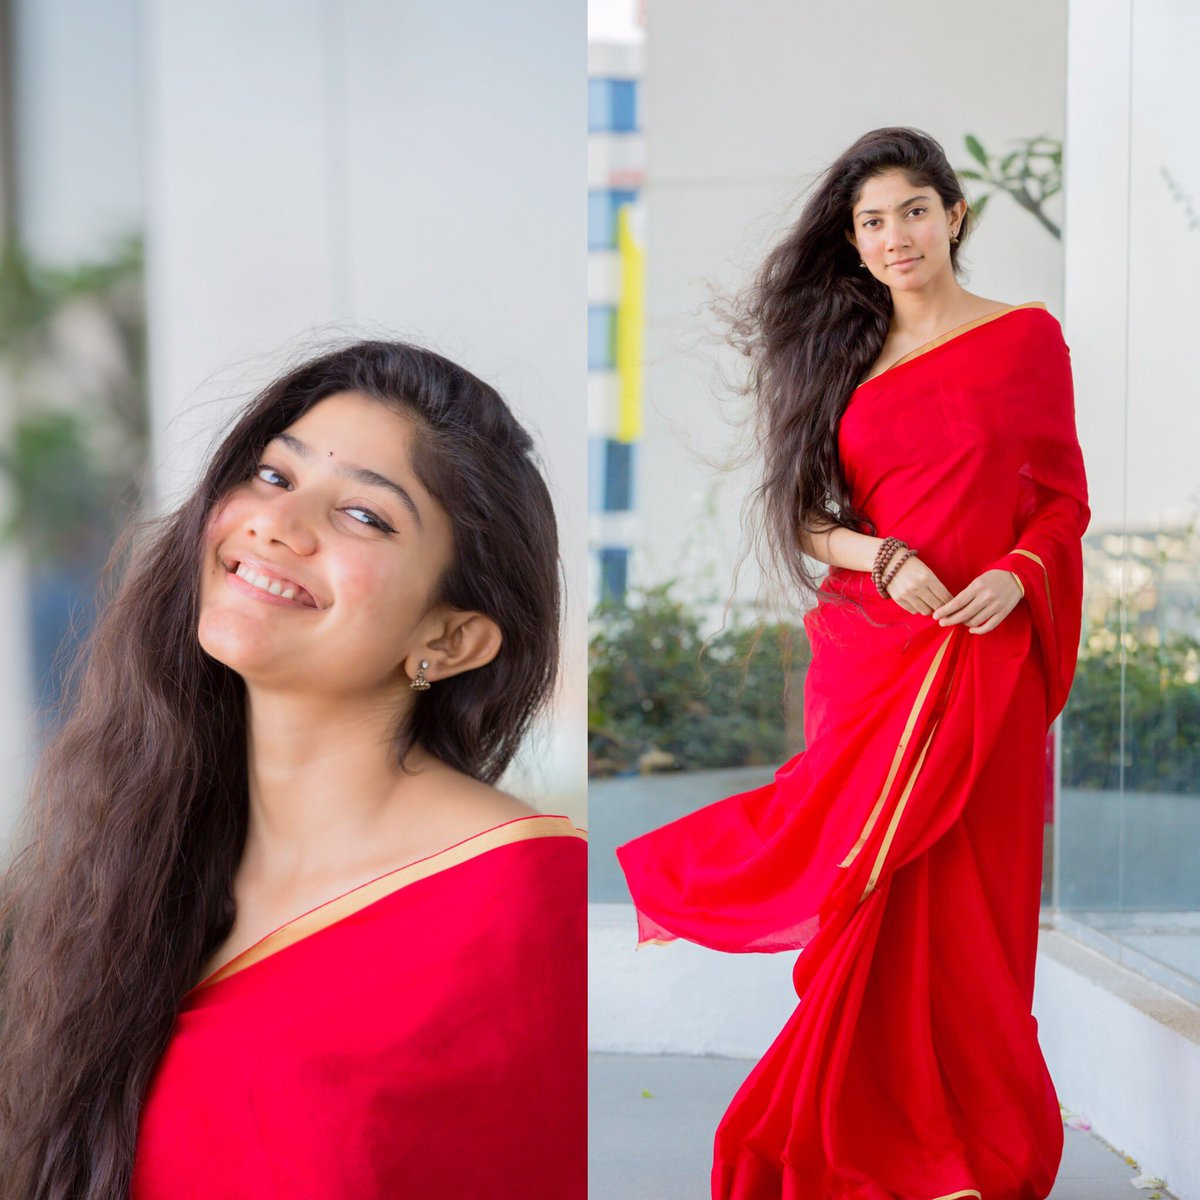 Super Cute Photo Stills Of Actress Sai Pallavi | South Indian Actresses sai pallavi Super Cute Photo Stills Of Actress Sai Pallavi | South Indian Actresses Sai Pallavi Beautiful Pics of South Indian Heroines 2